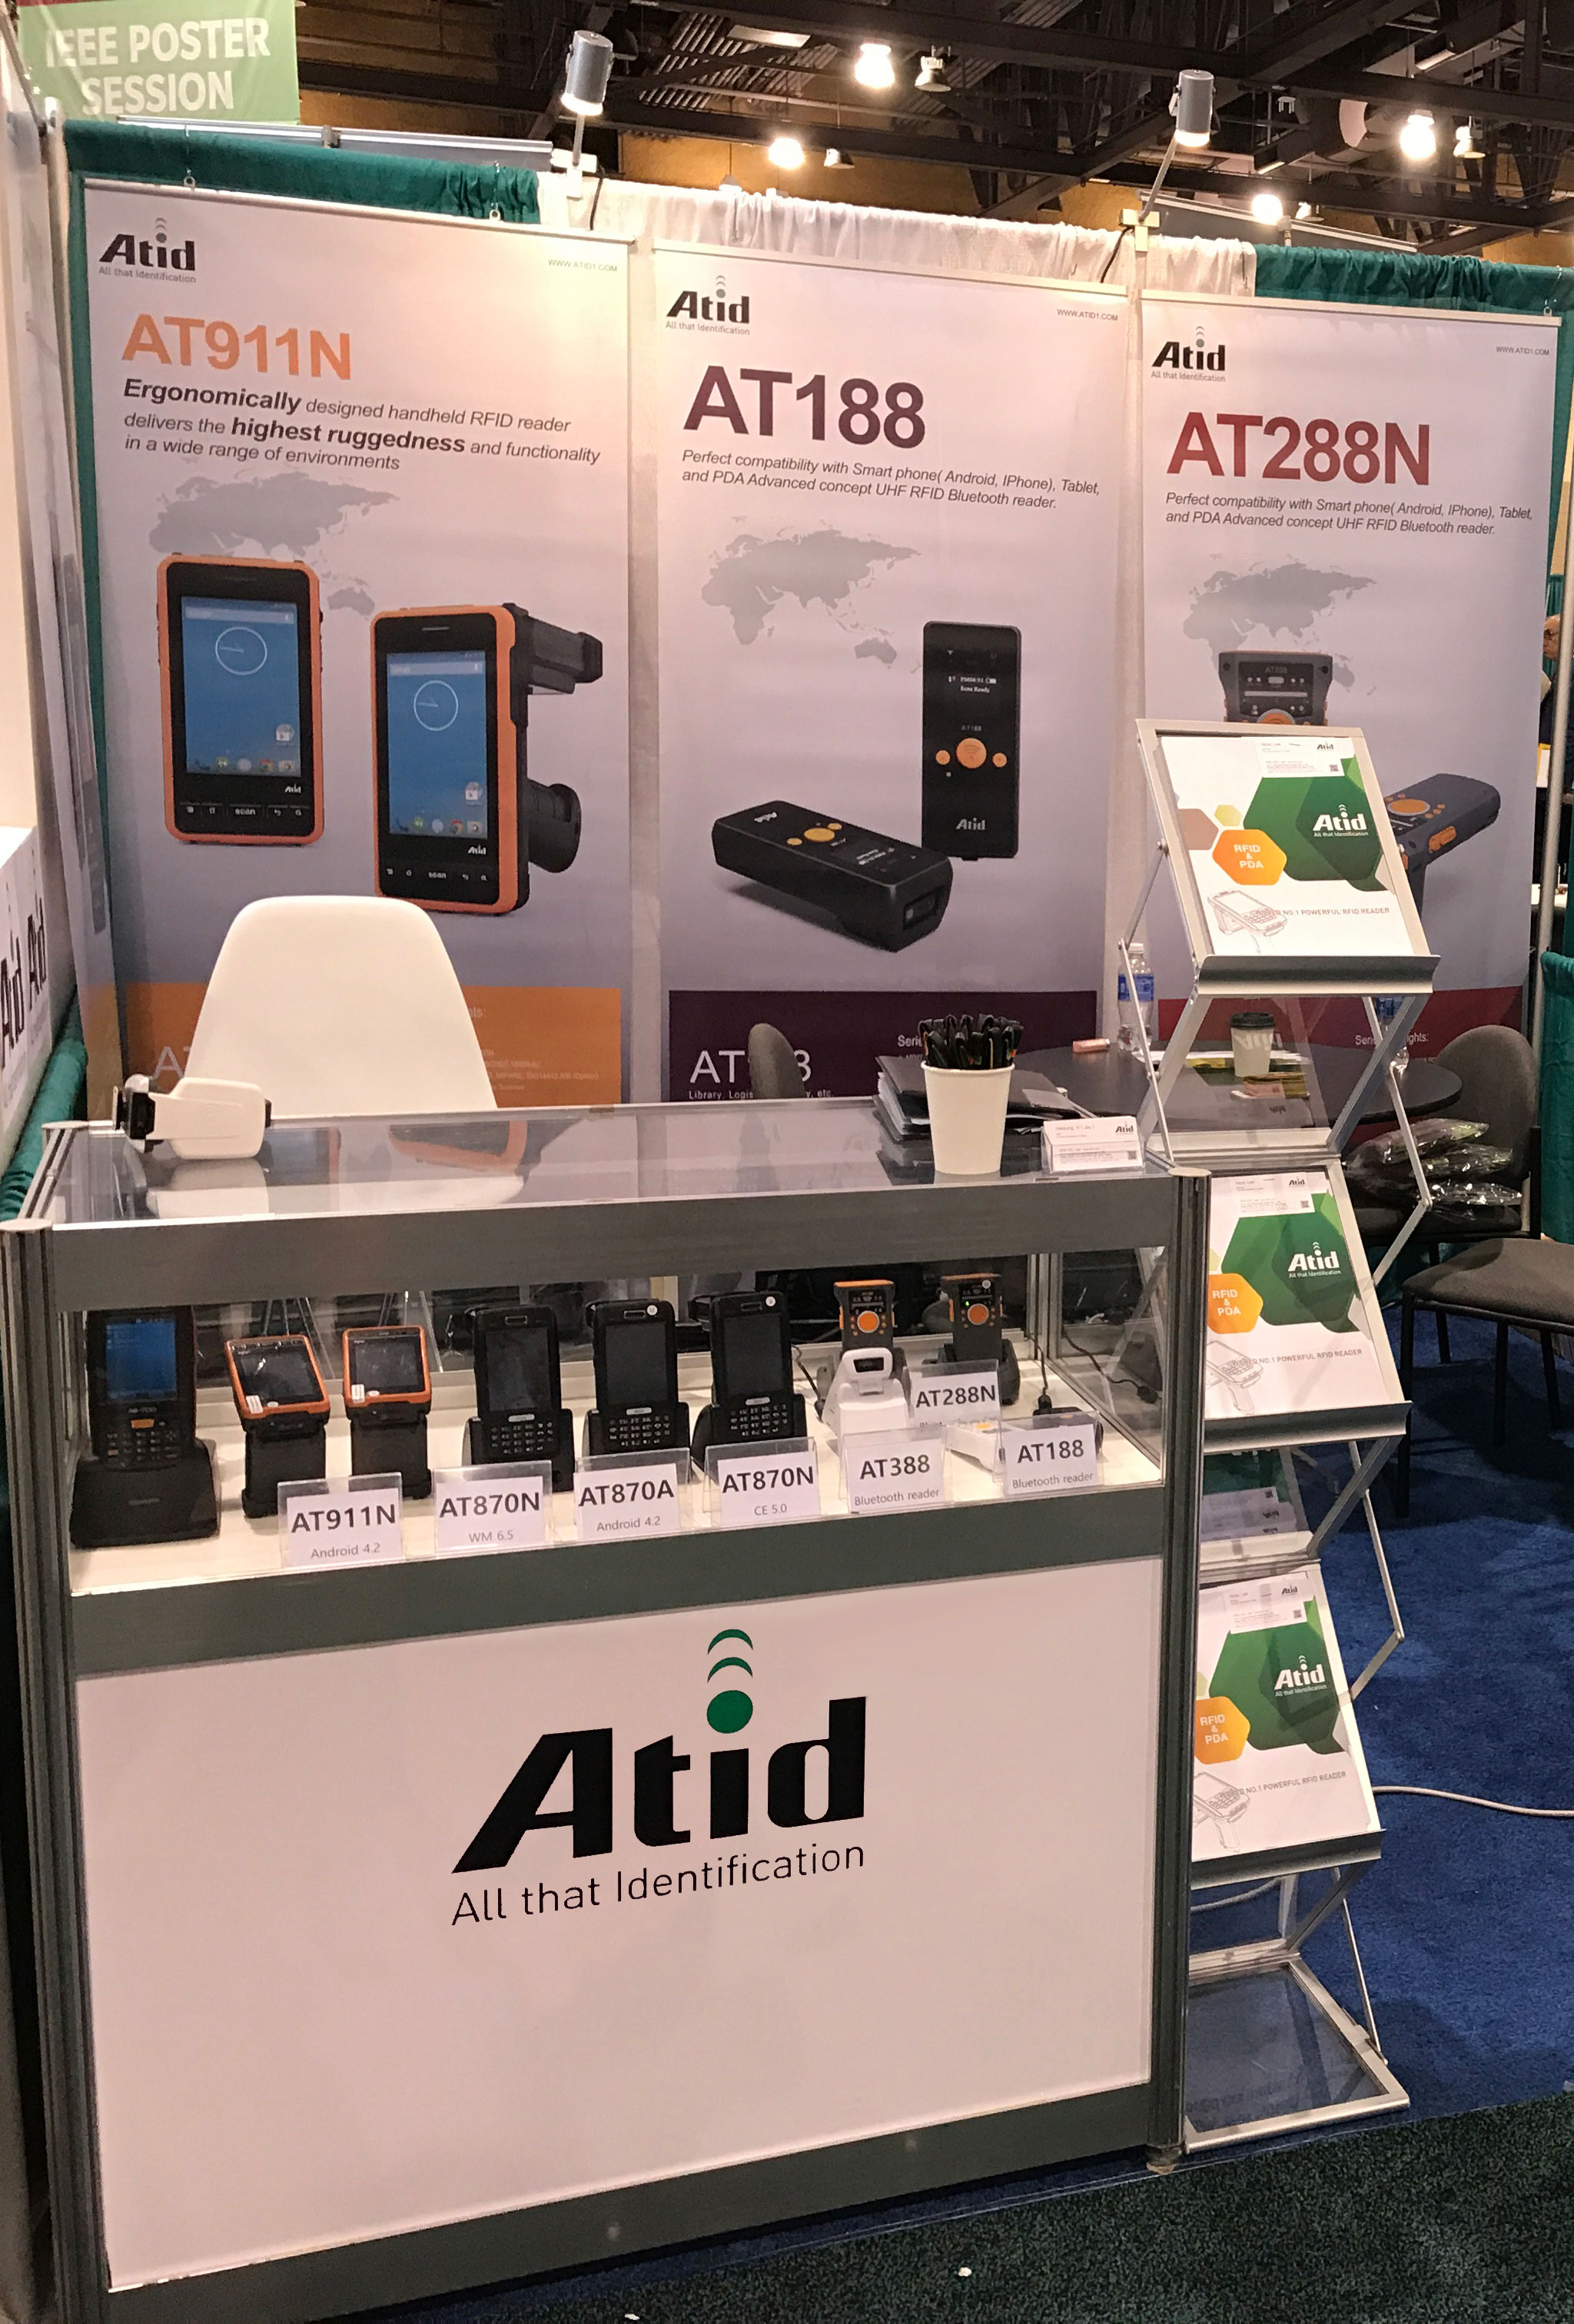 RFID Journal LIVE! 2017 Atid booth